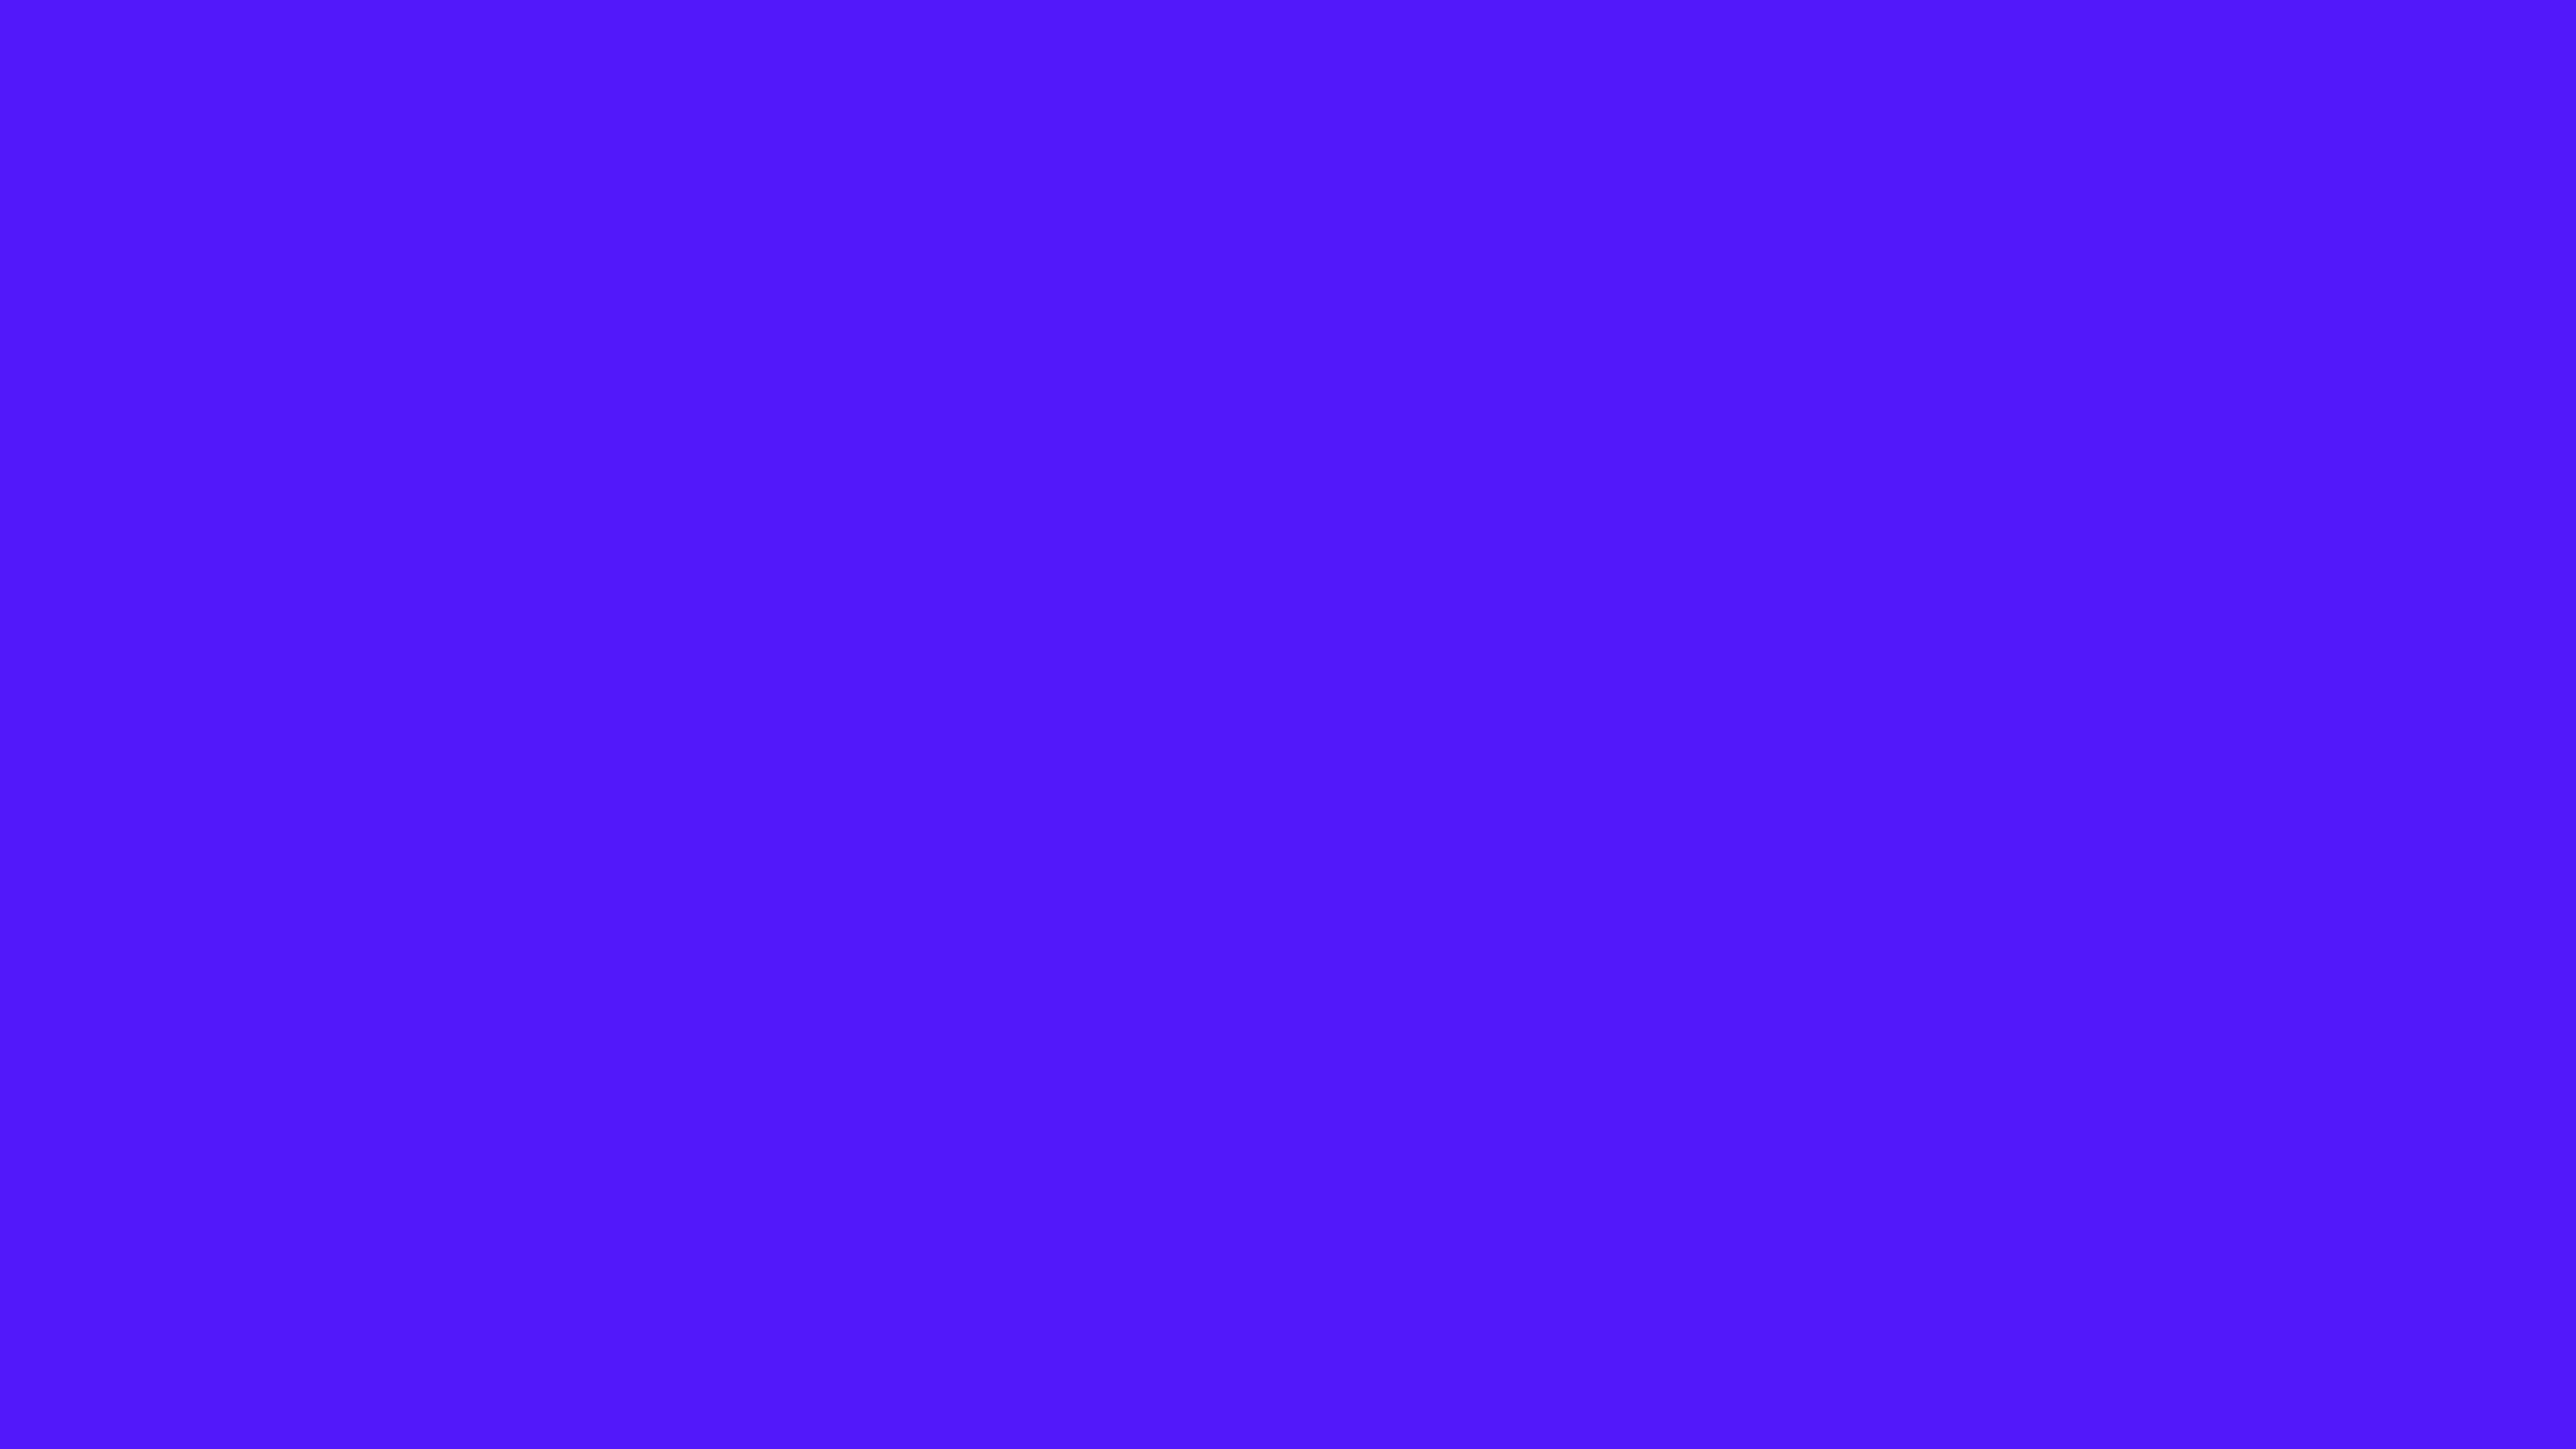 5120x2880 Han Purple Solid Color Background